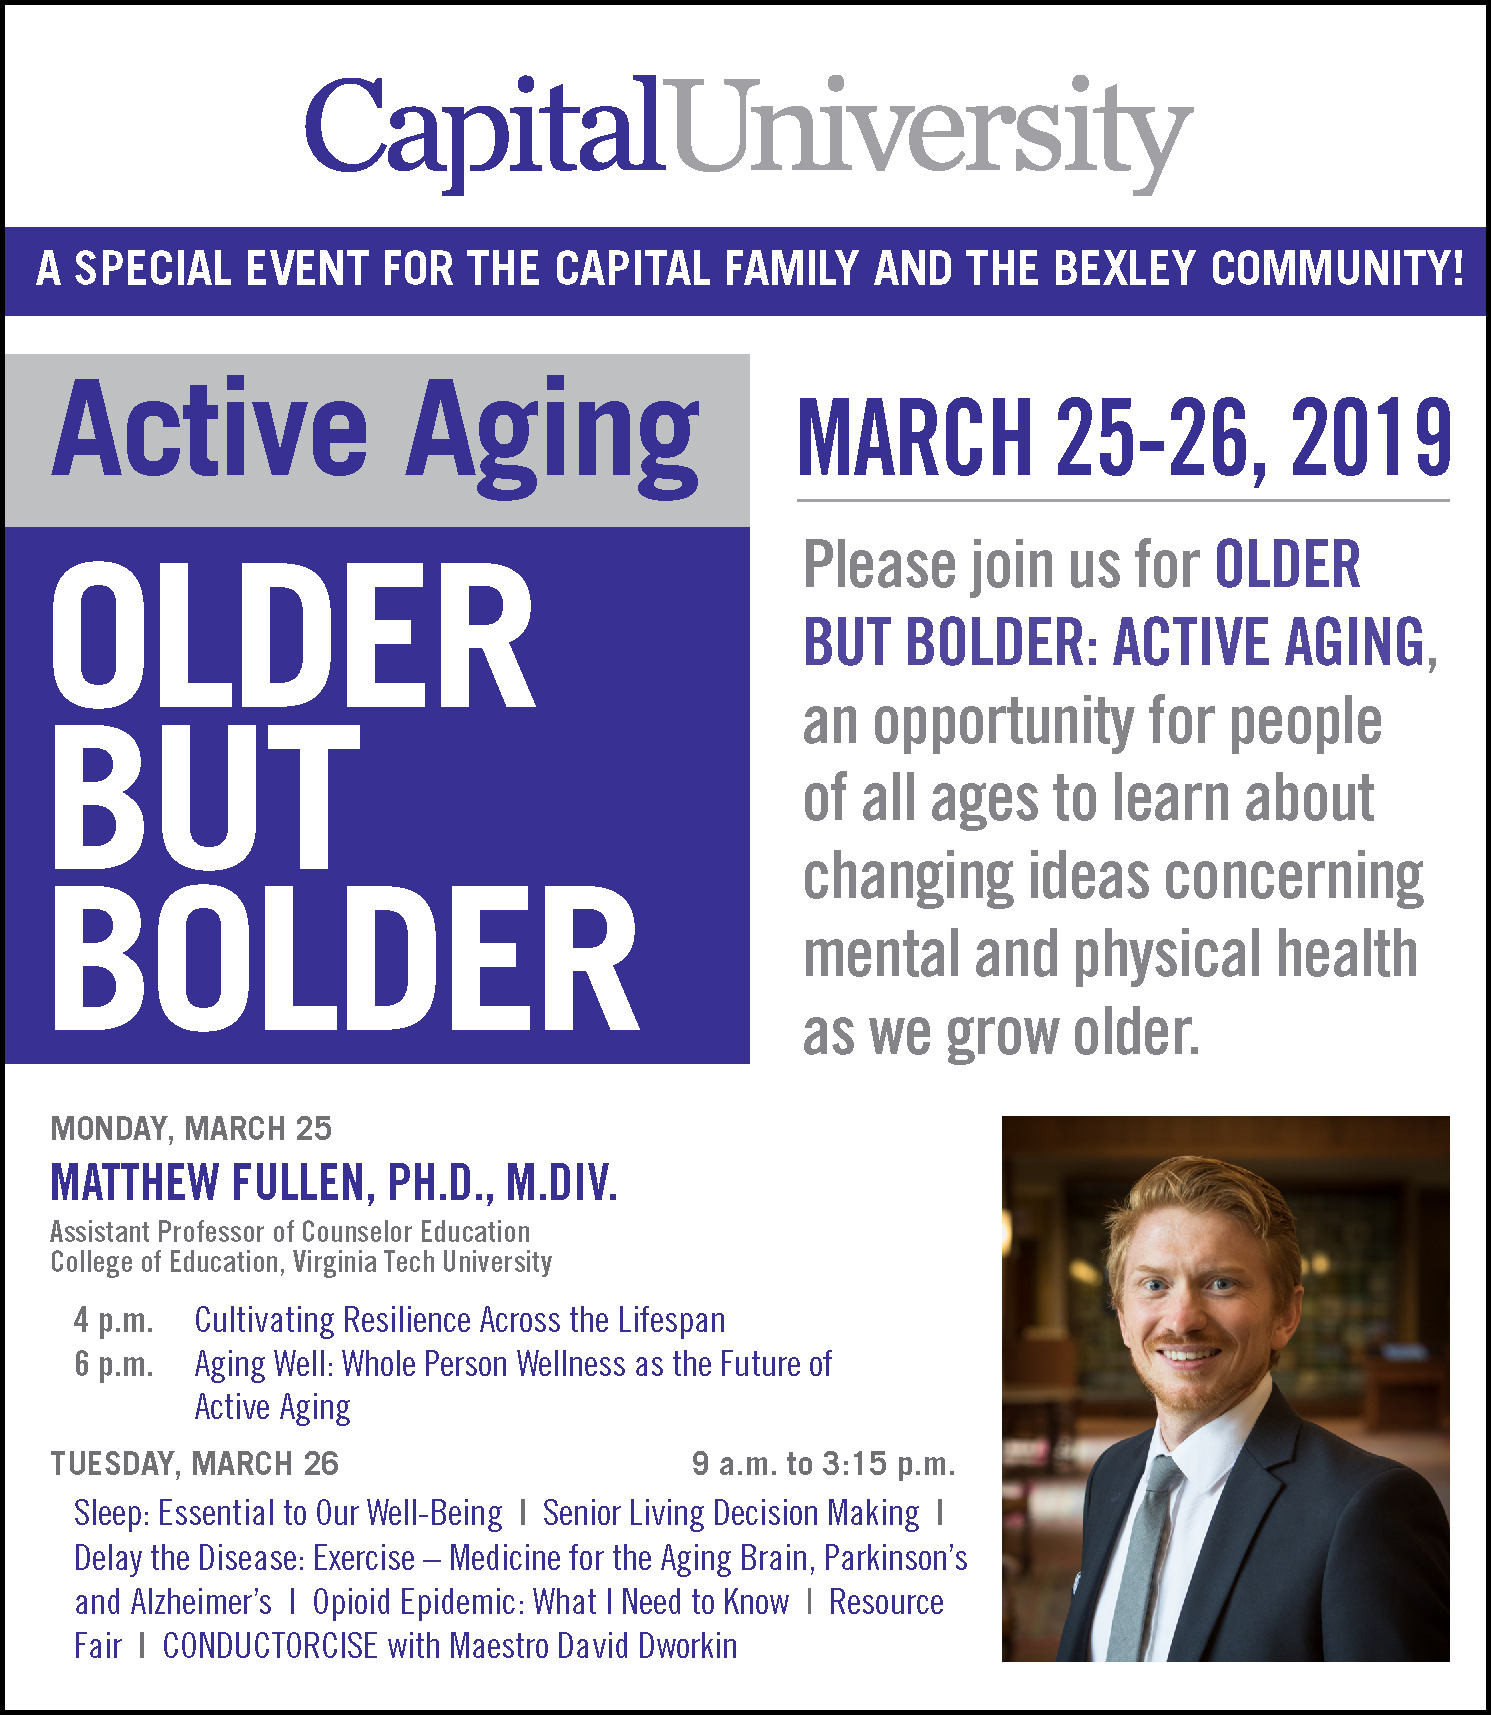 """Dr. Matthew Fullen served as the keynote speaker at Capital University's 2019 """"Active Aging"""" conference, where he shared his research on the importance of resilience and wellness when working with older adults."""